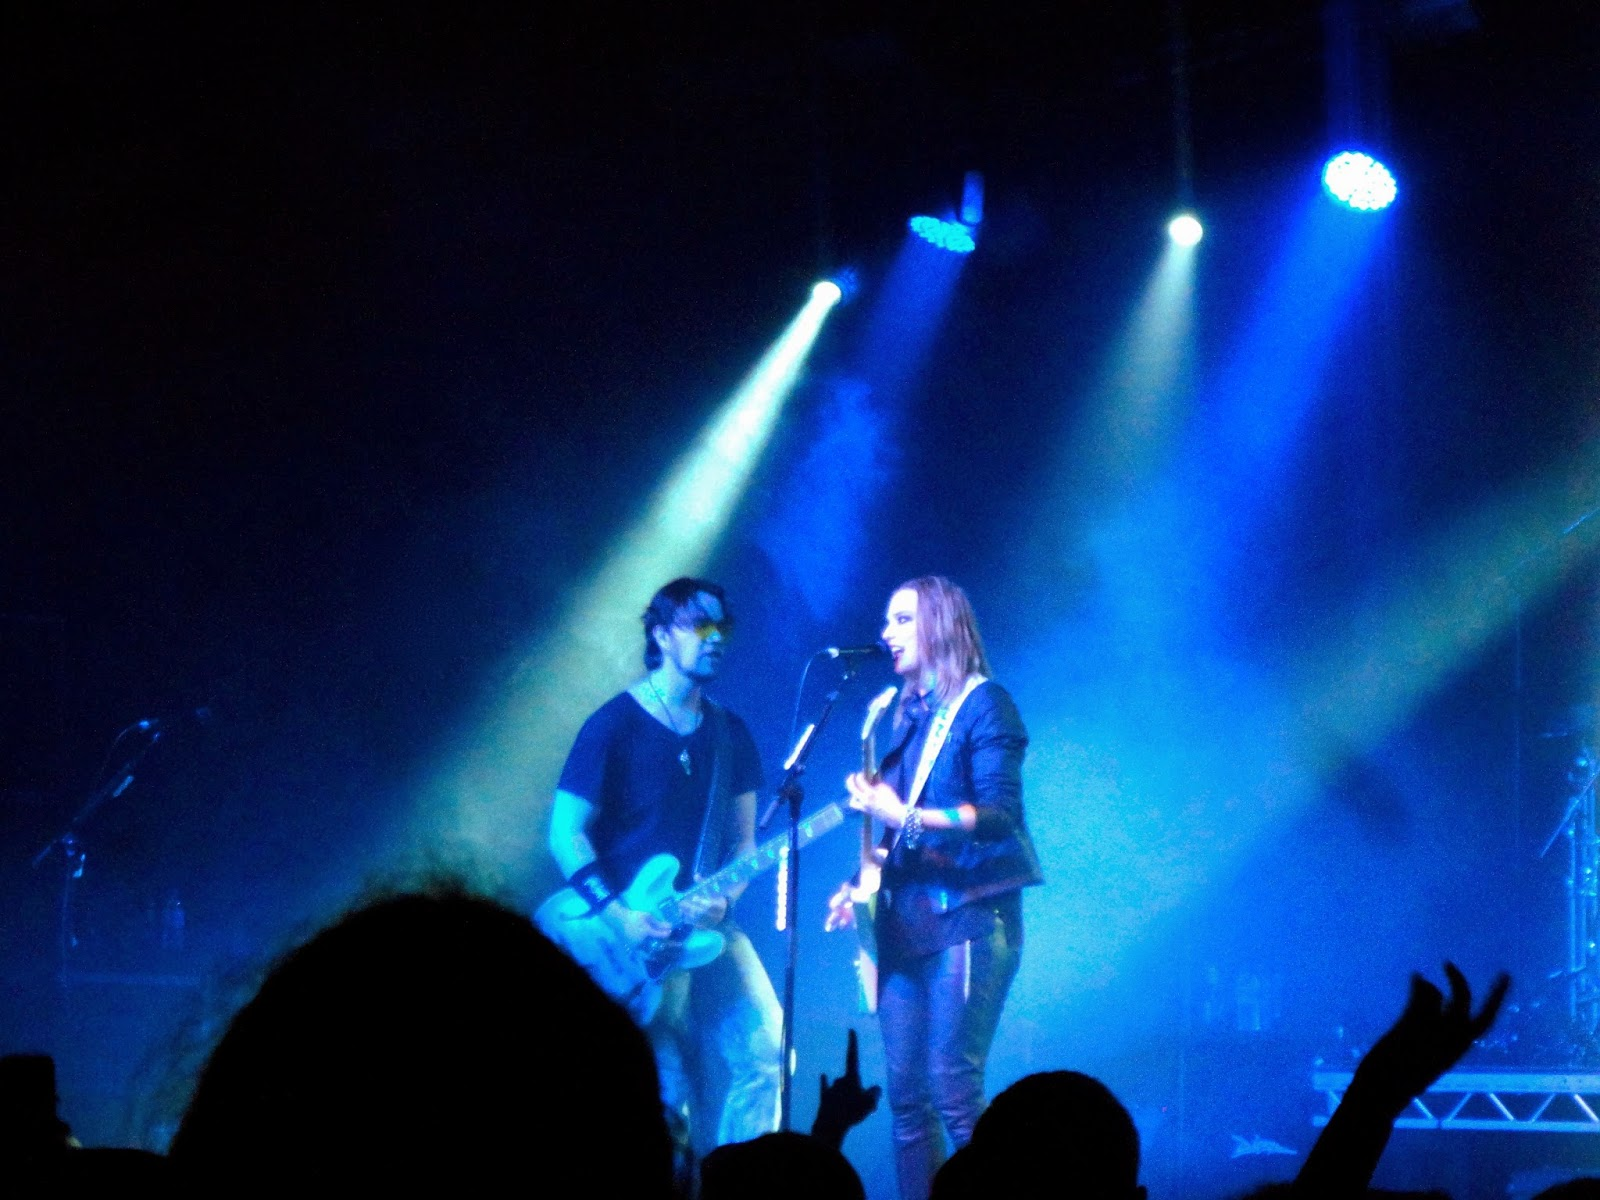 Halestorm performing live at the Glasgow Barrowlands